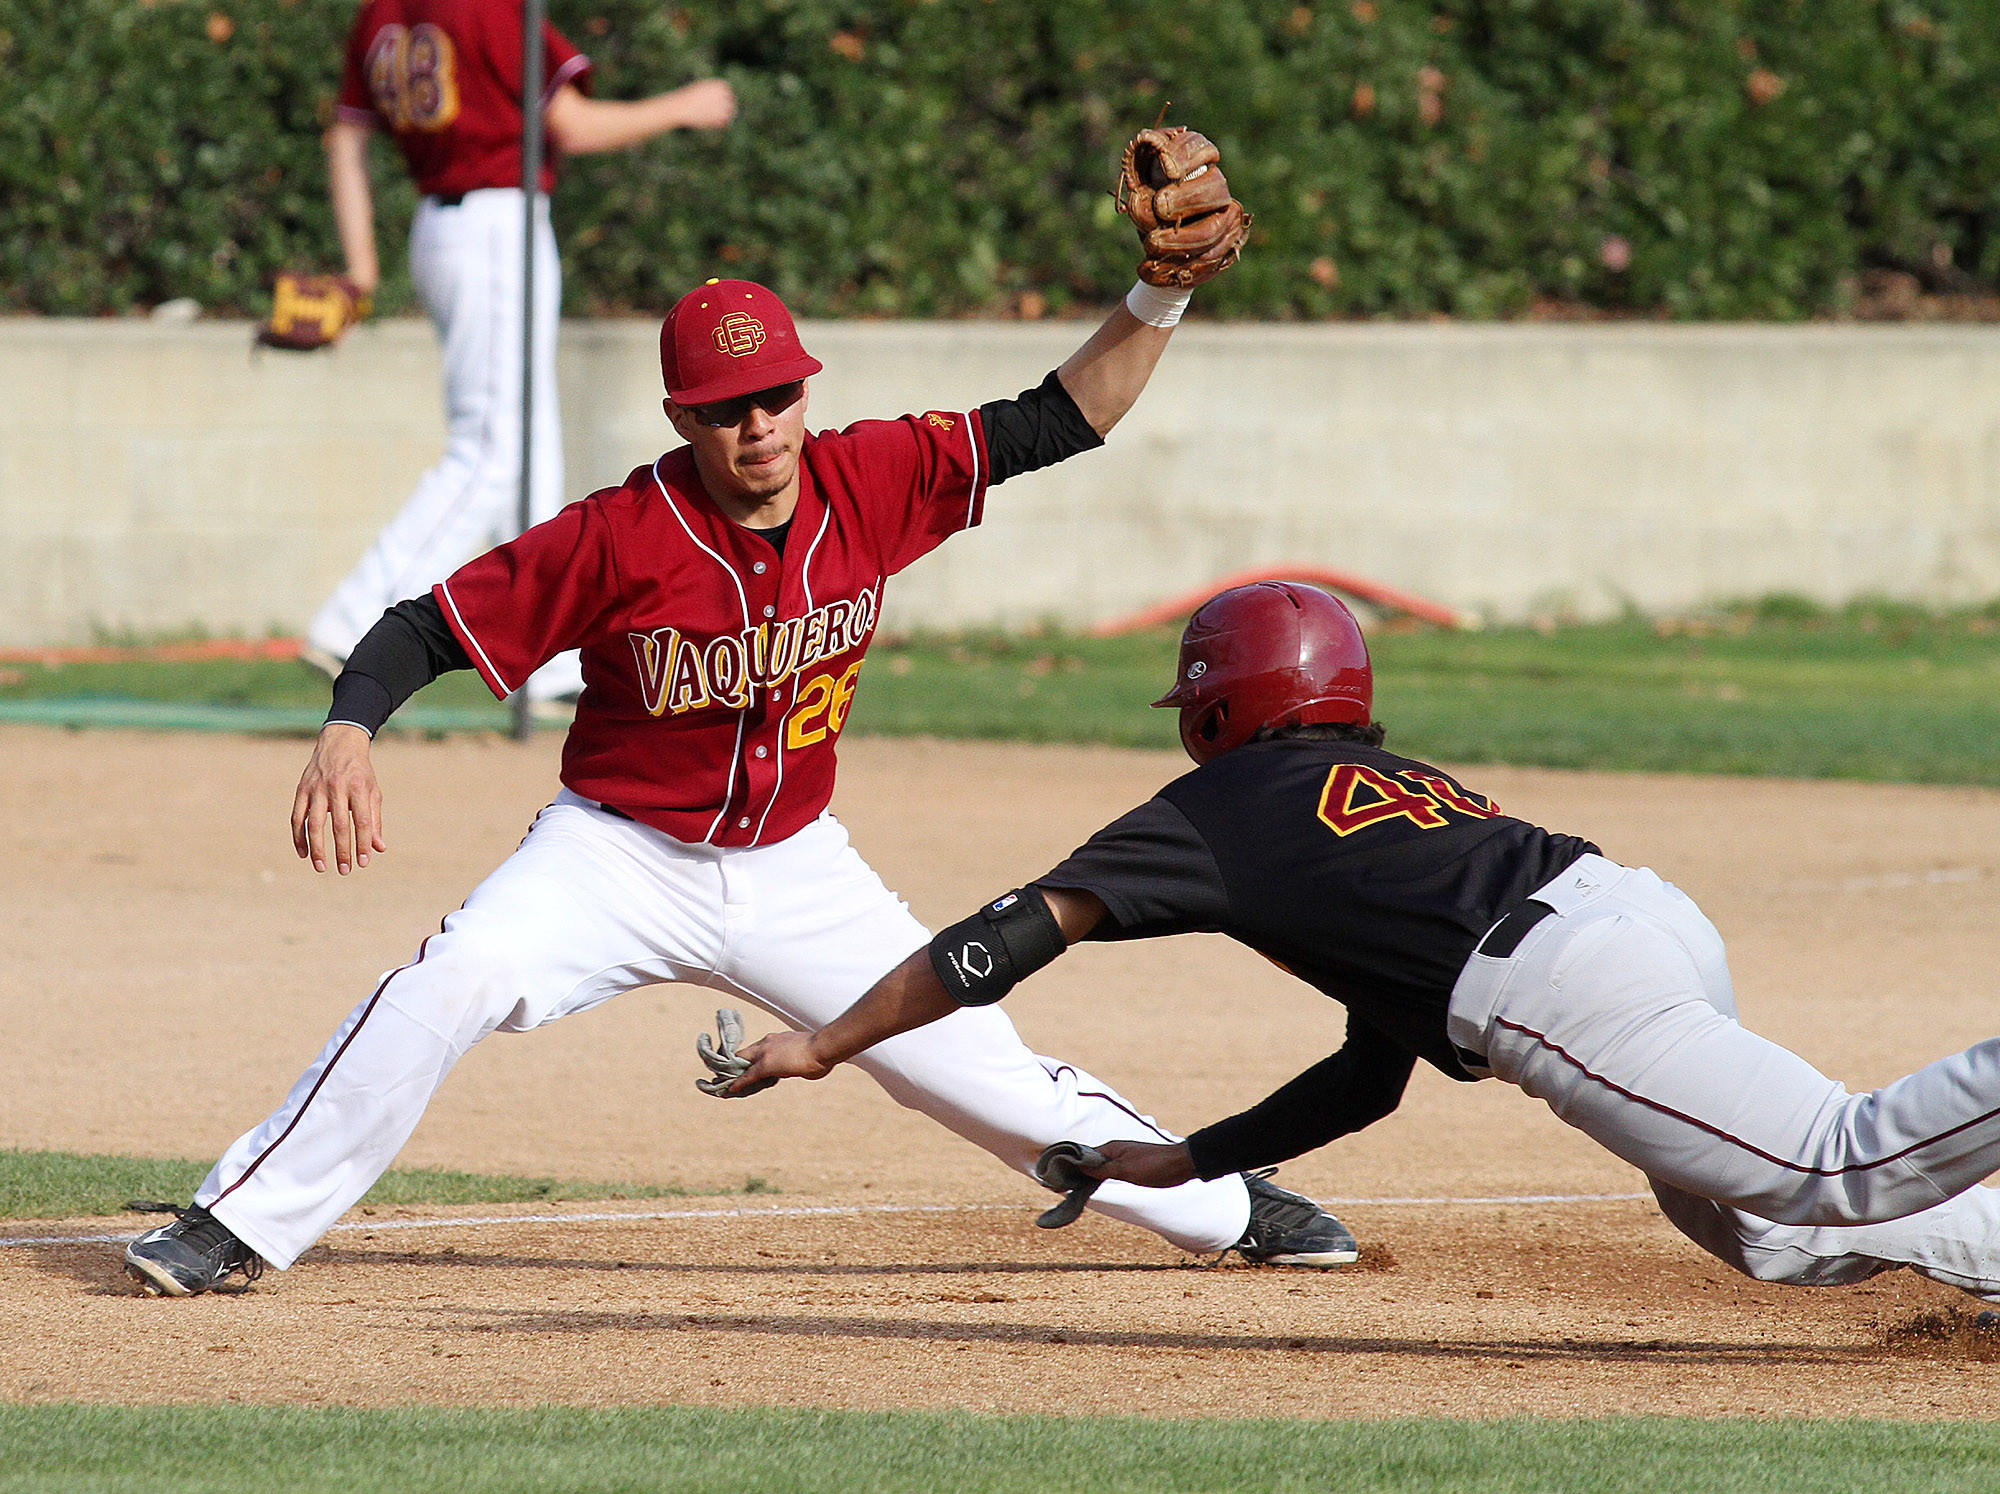 GCC third baseman Randy Medellin catches the ball and tags out Lino Lares at third base in a scrimmage against the other half of the GCC team at Stengel Field in Glendale on Wednesday, January 22, 2014.